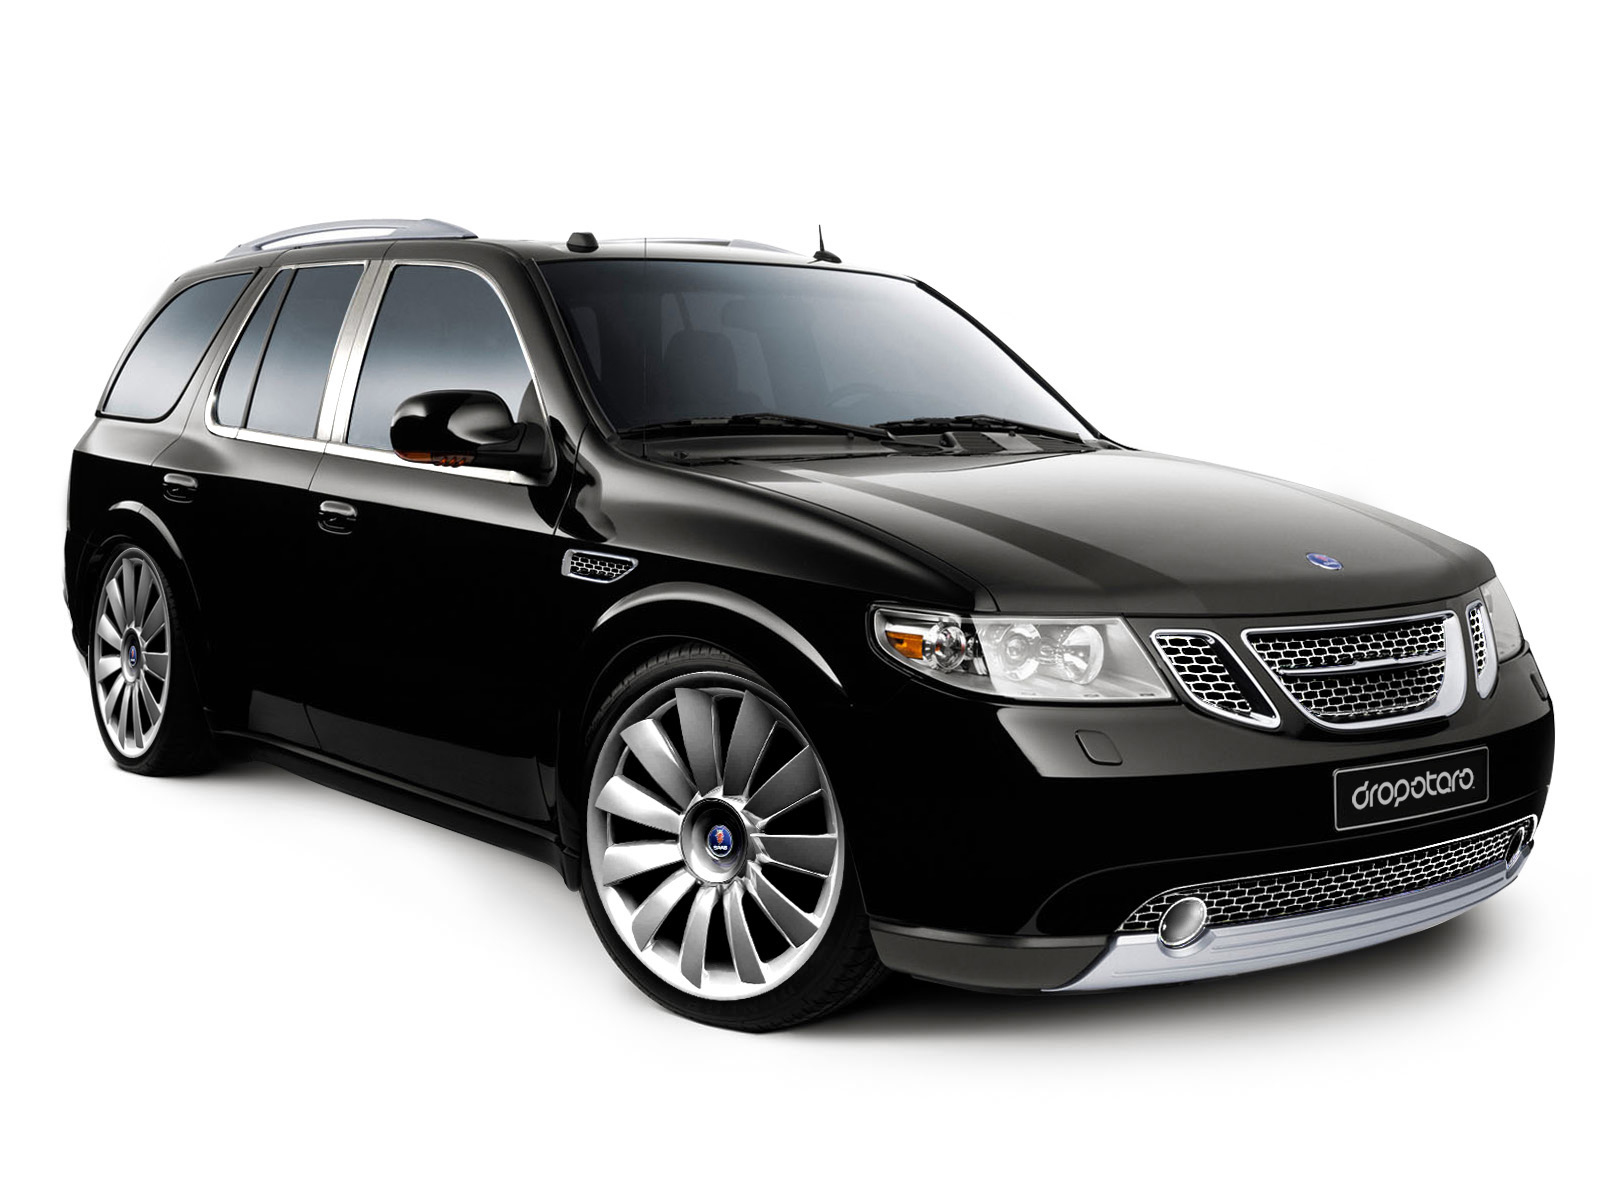 2006 Saab 9-7X Aero Concept History, Pictures, Value ...